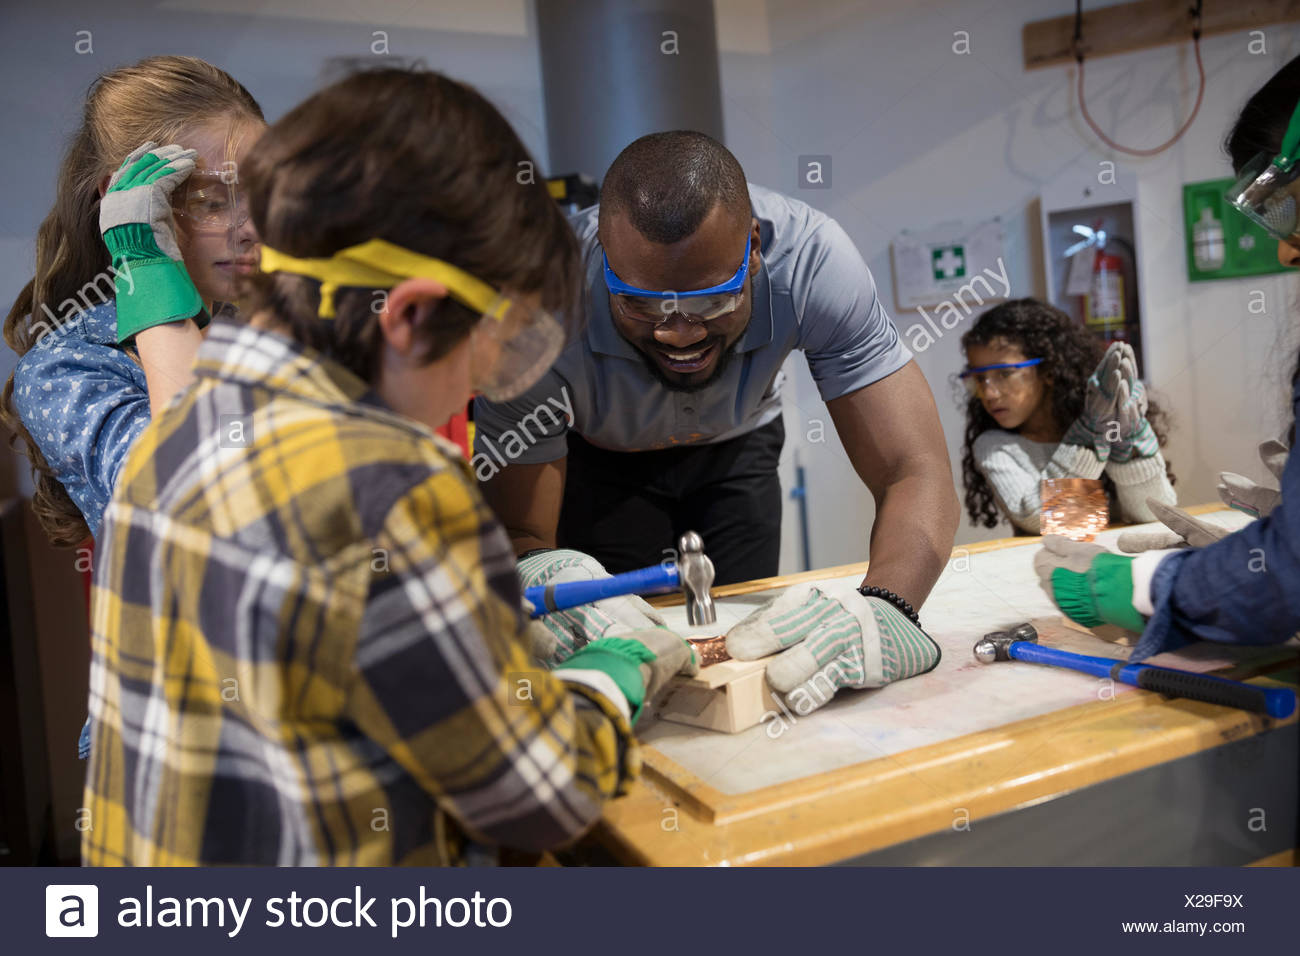 Scientist and children hammering wood in science center - Stock Image